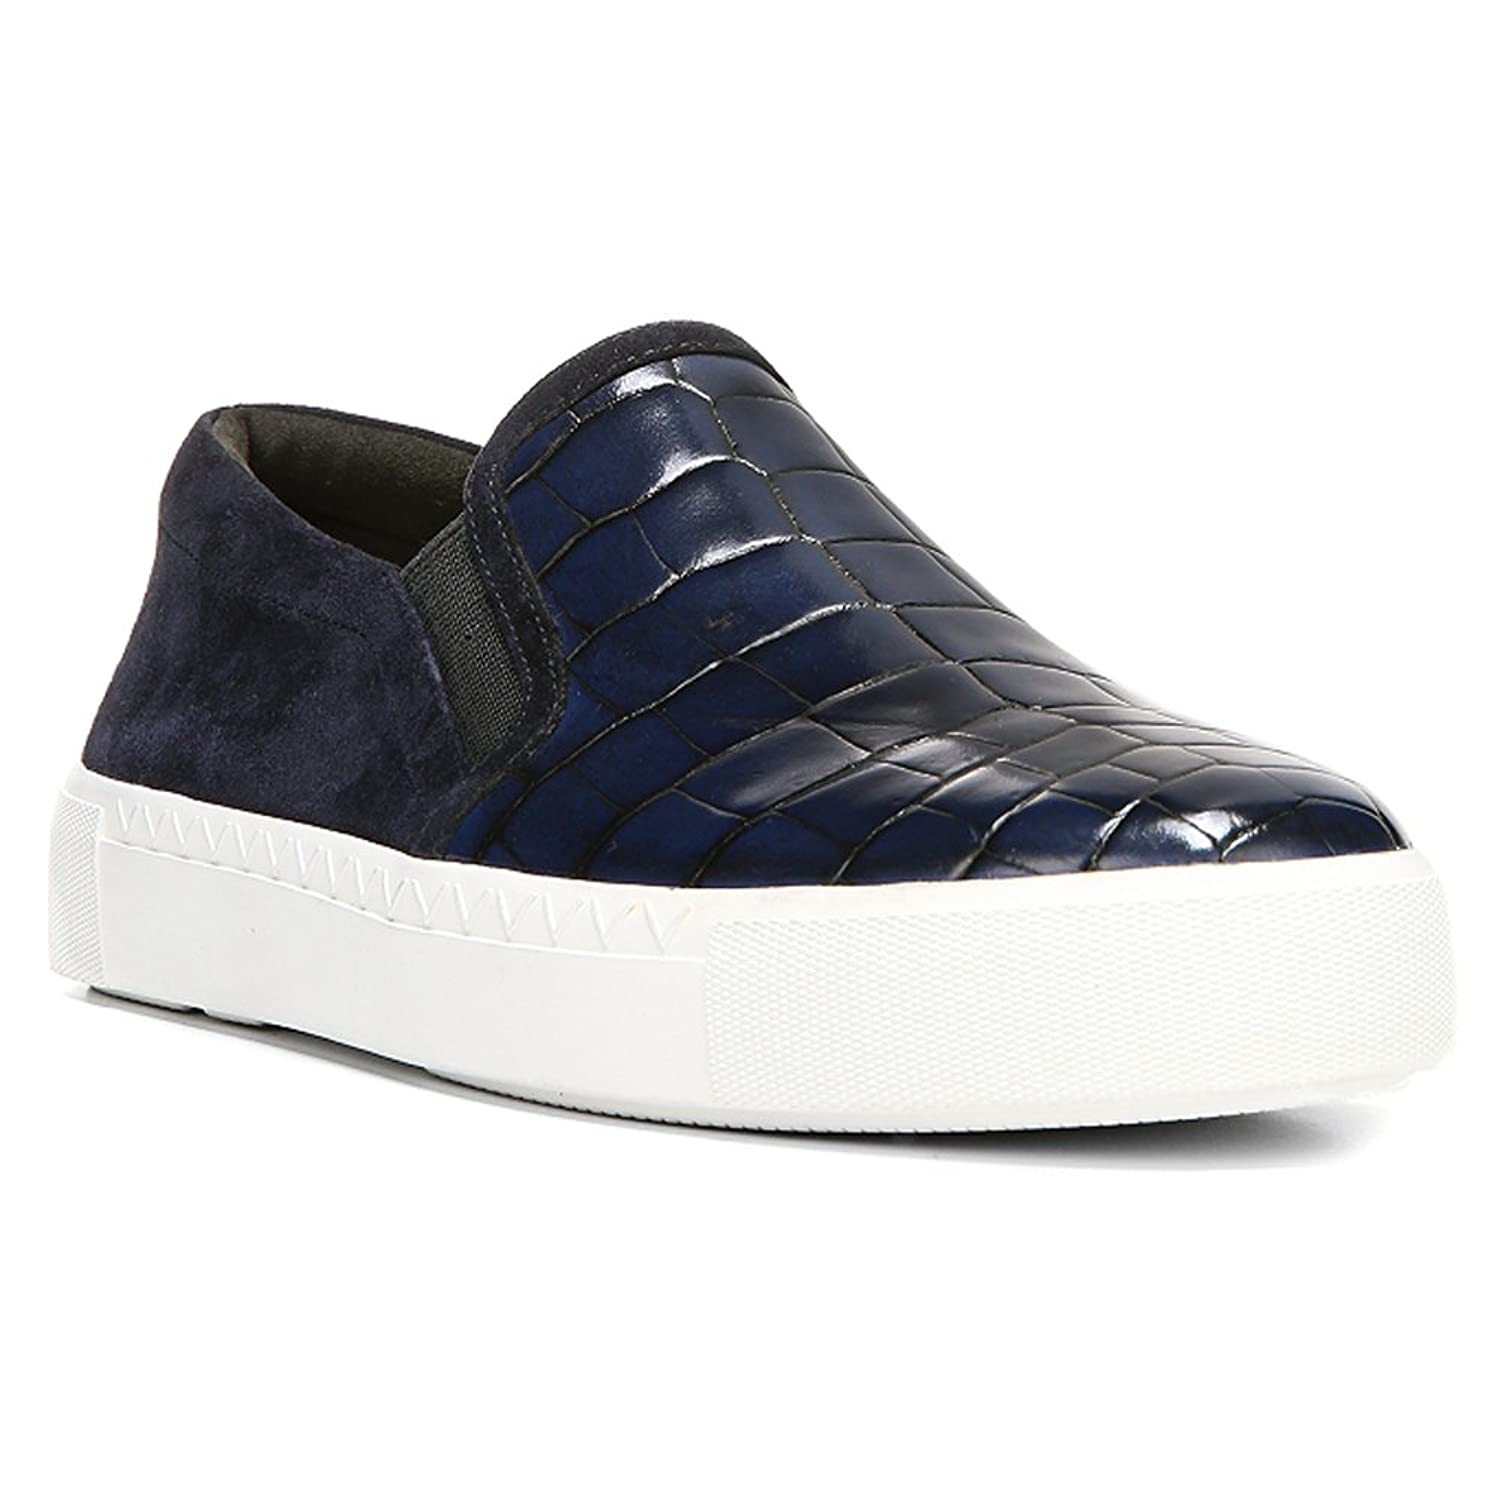 Via Spiga Women's Maliah